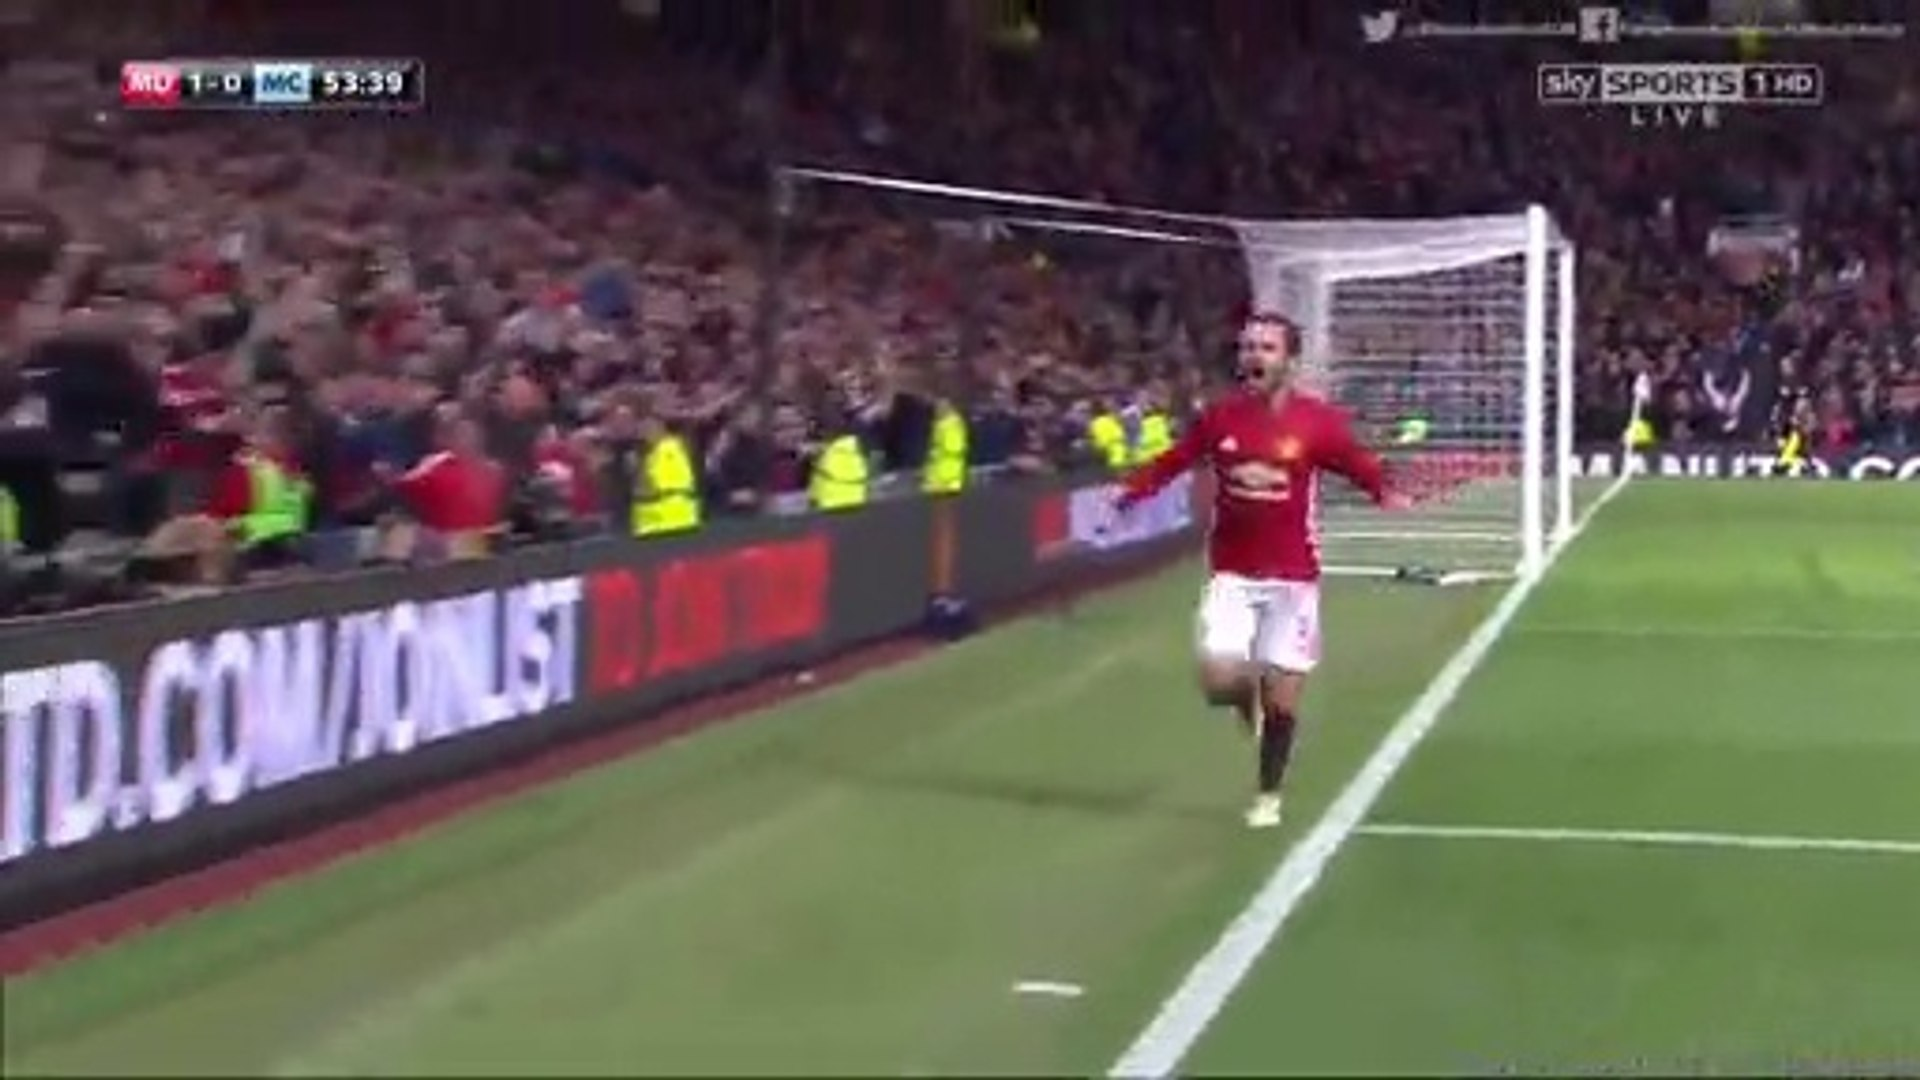 1-0 Juan Mata Goal HD - Manchester United vs Manchester City EFL Cup 26.10.2016 HD